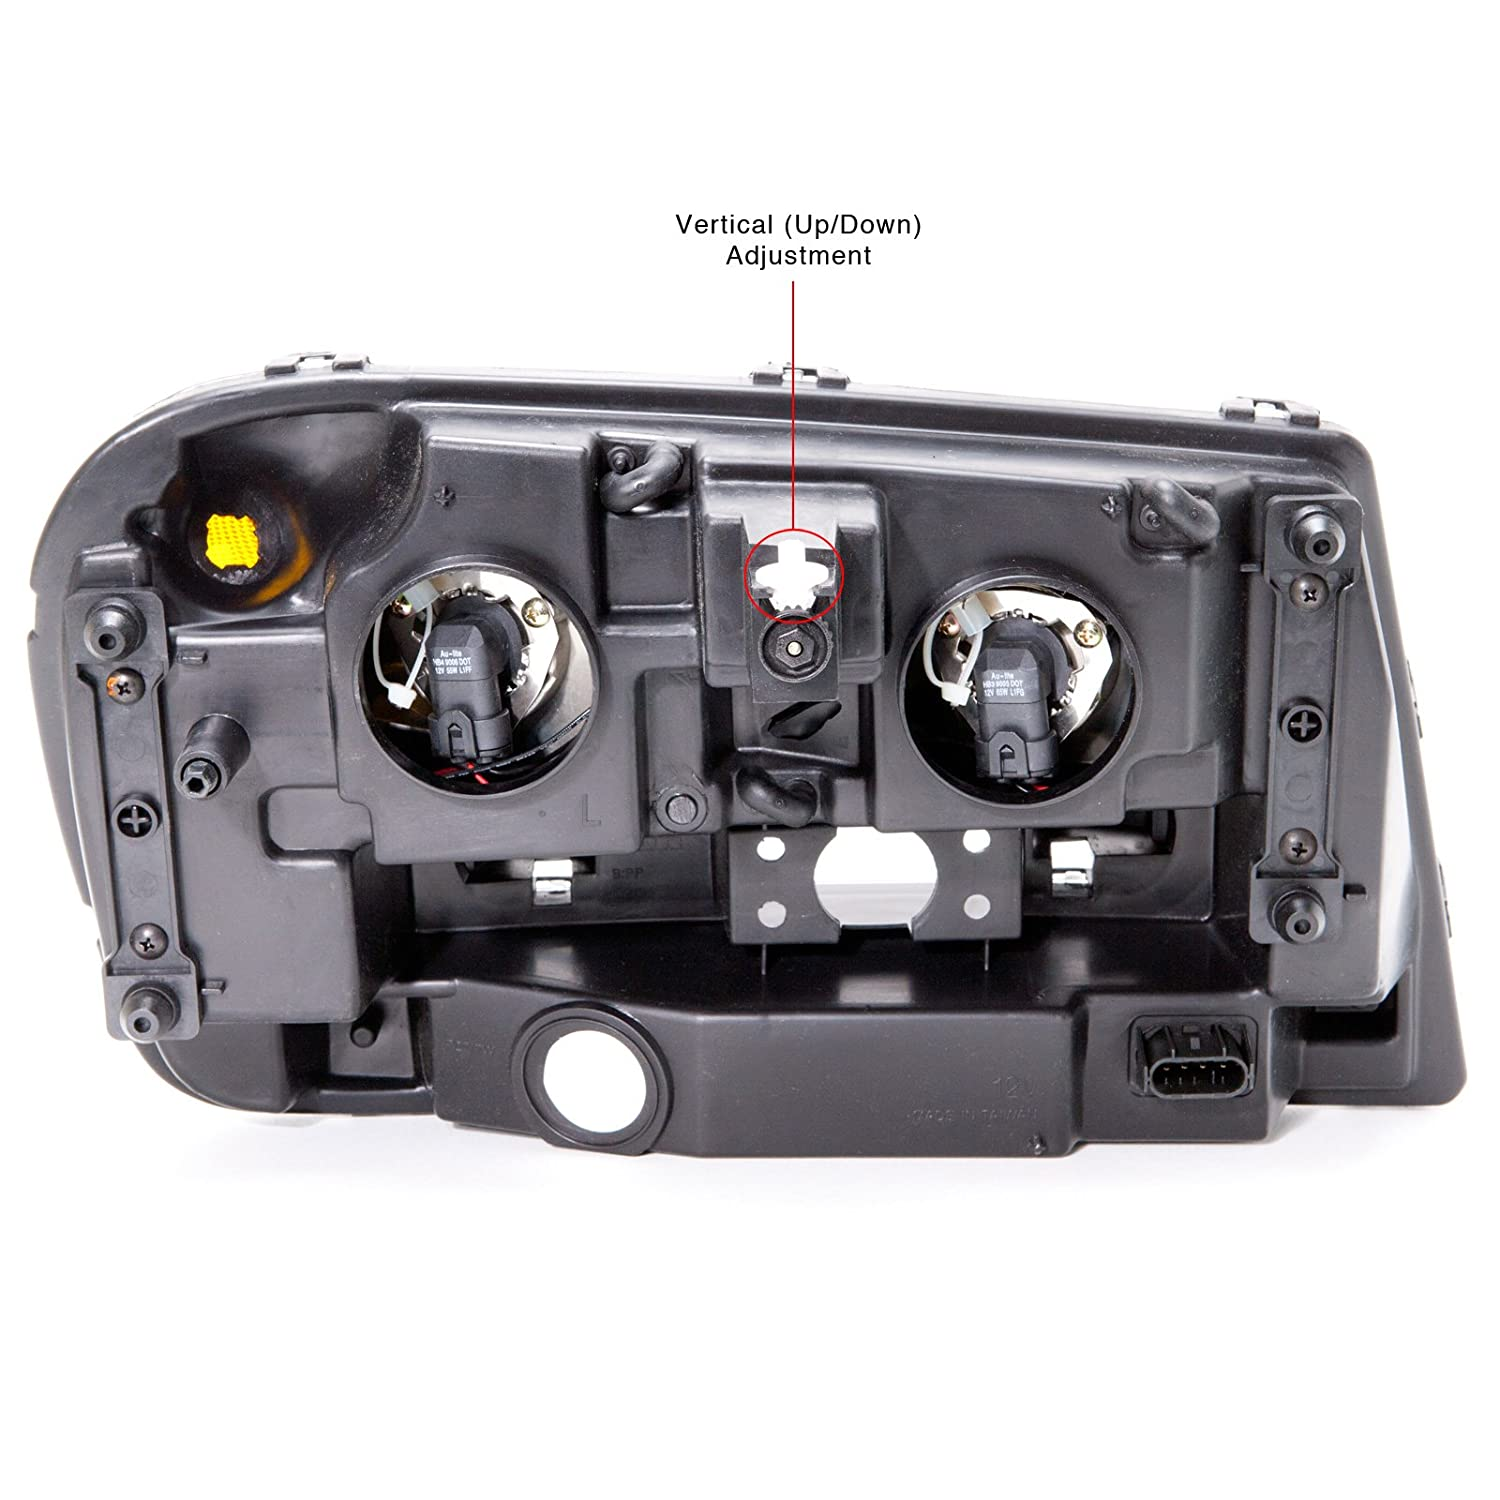 Headlights Depot Chevy Trailblazer Lt Ls Ss Headlight Oe 2005 Dimmer Switch Wiring Diagram Style Replacement Headlamp Driver Side New Automotive